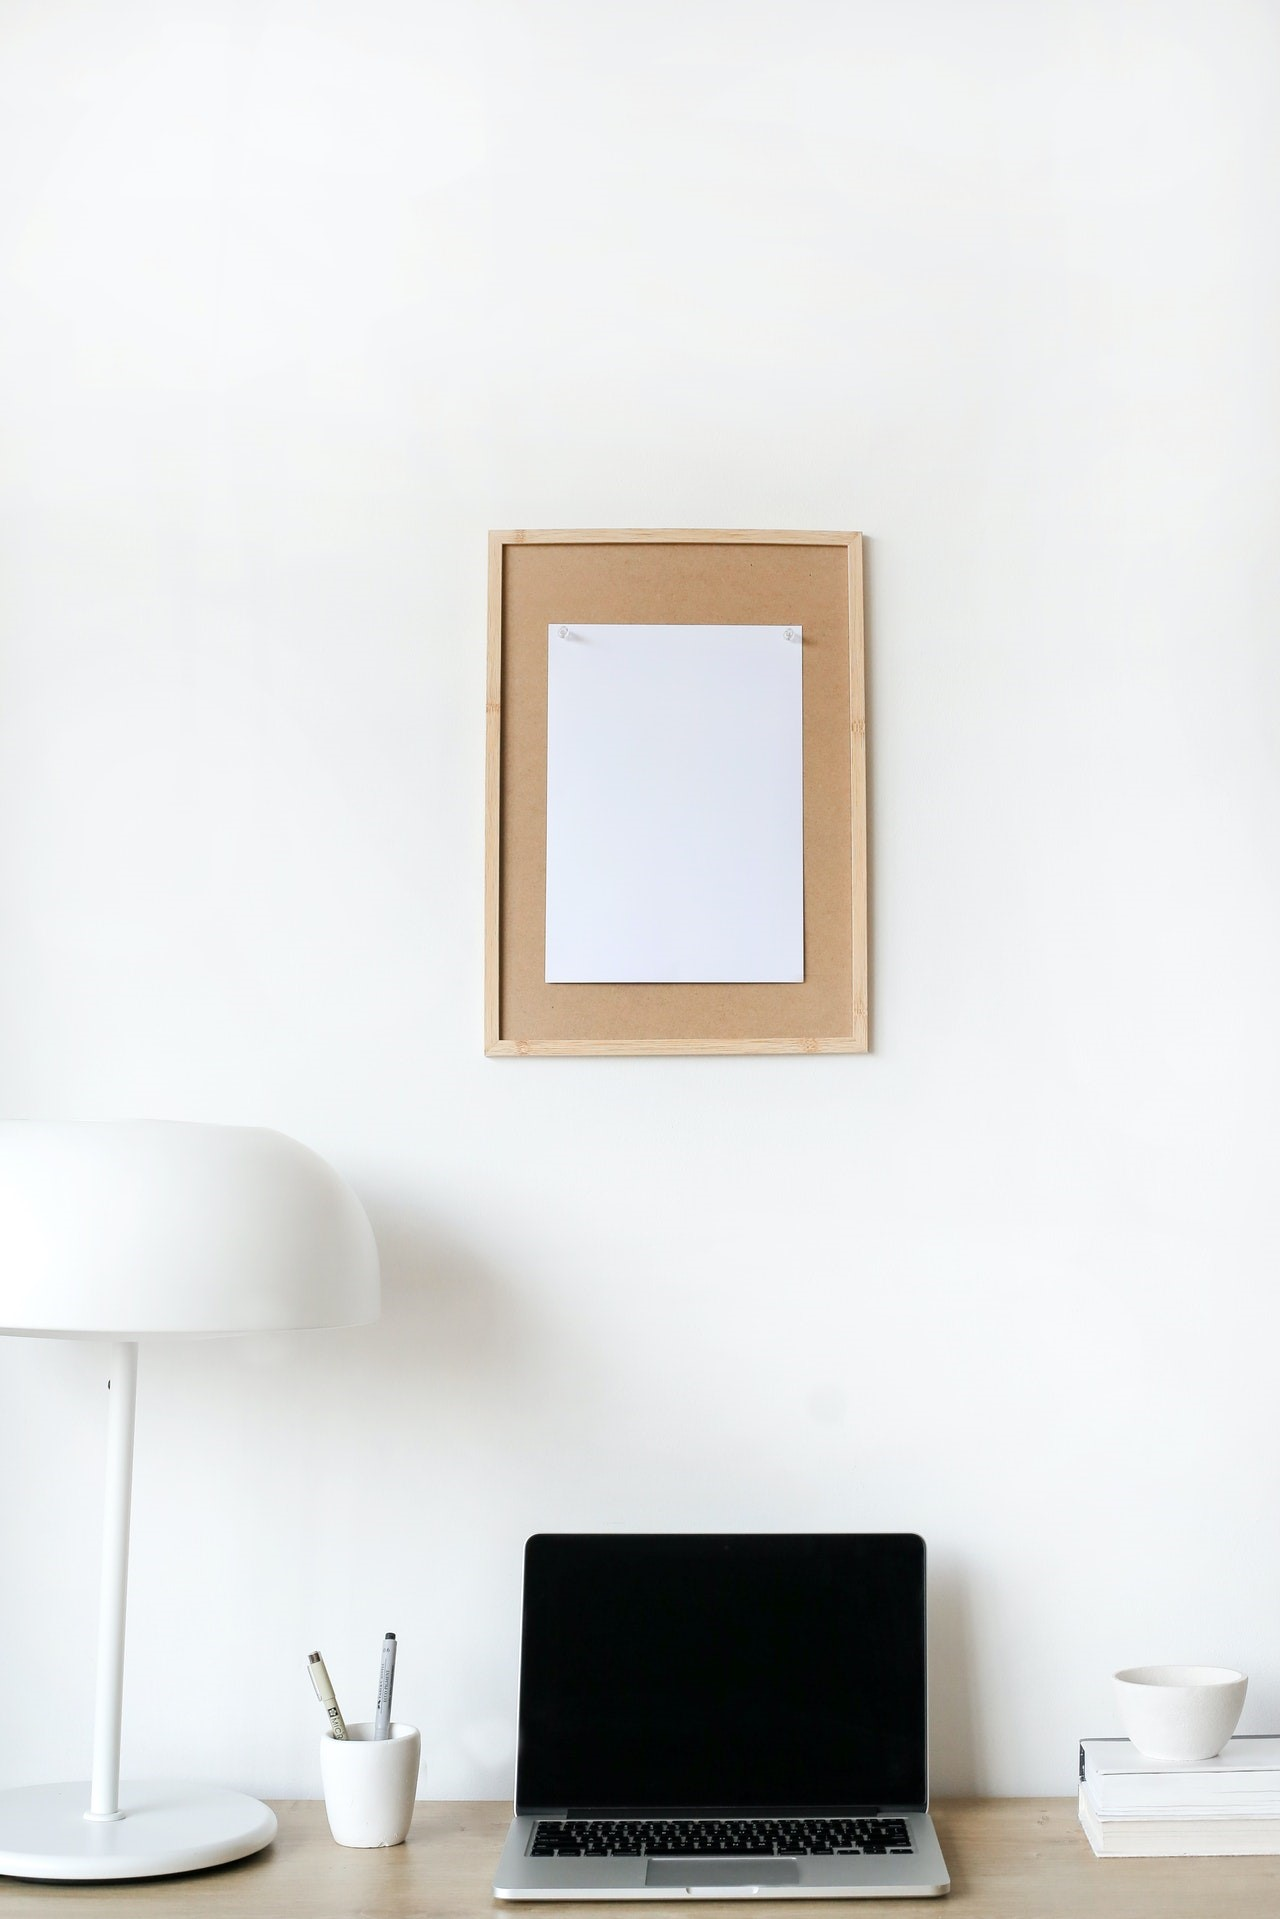 image - Go for Light or Neutral Colors for the Walls